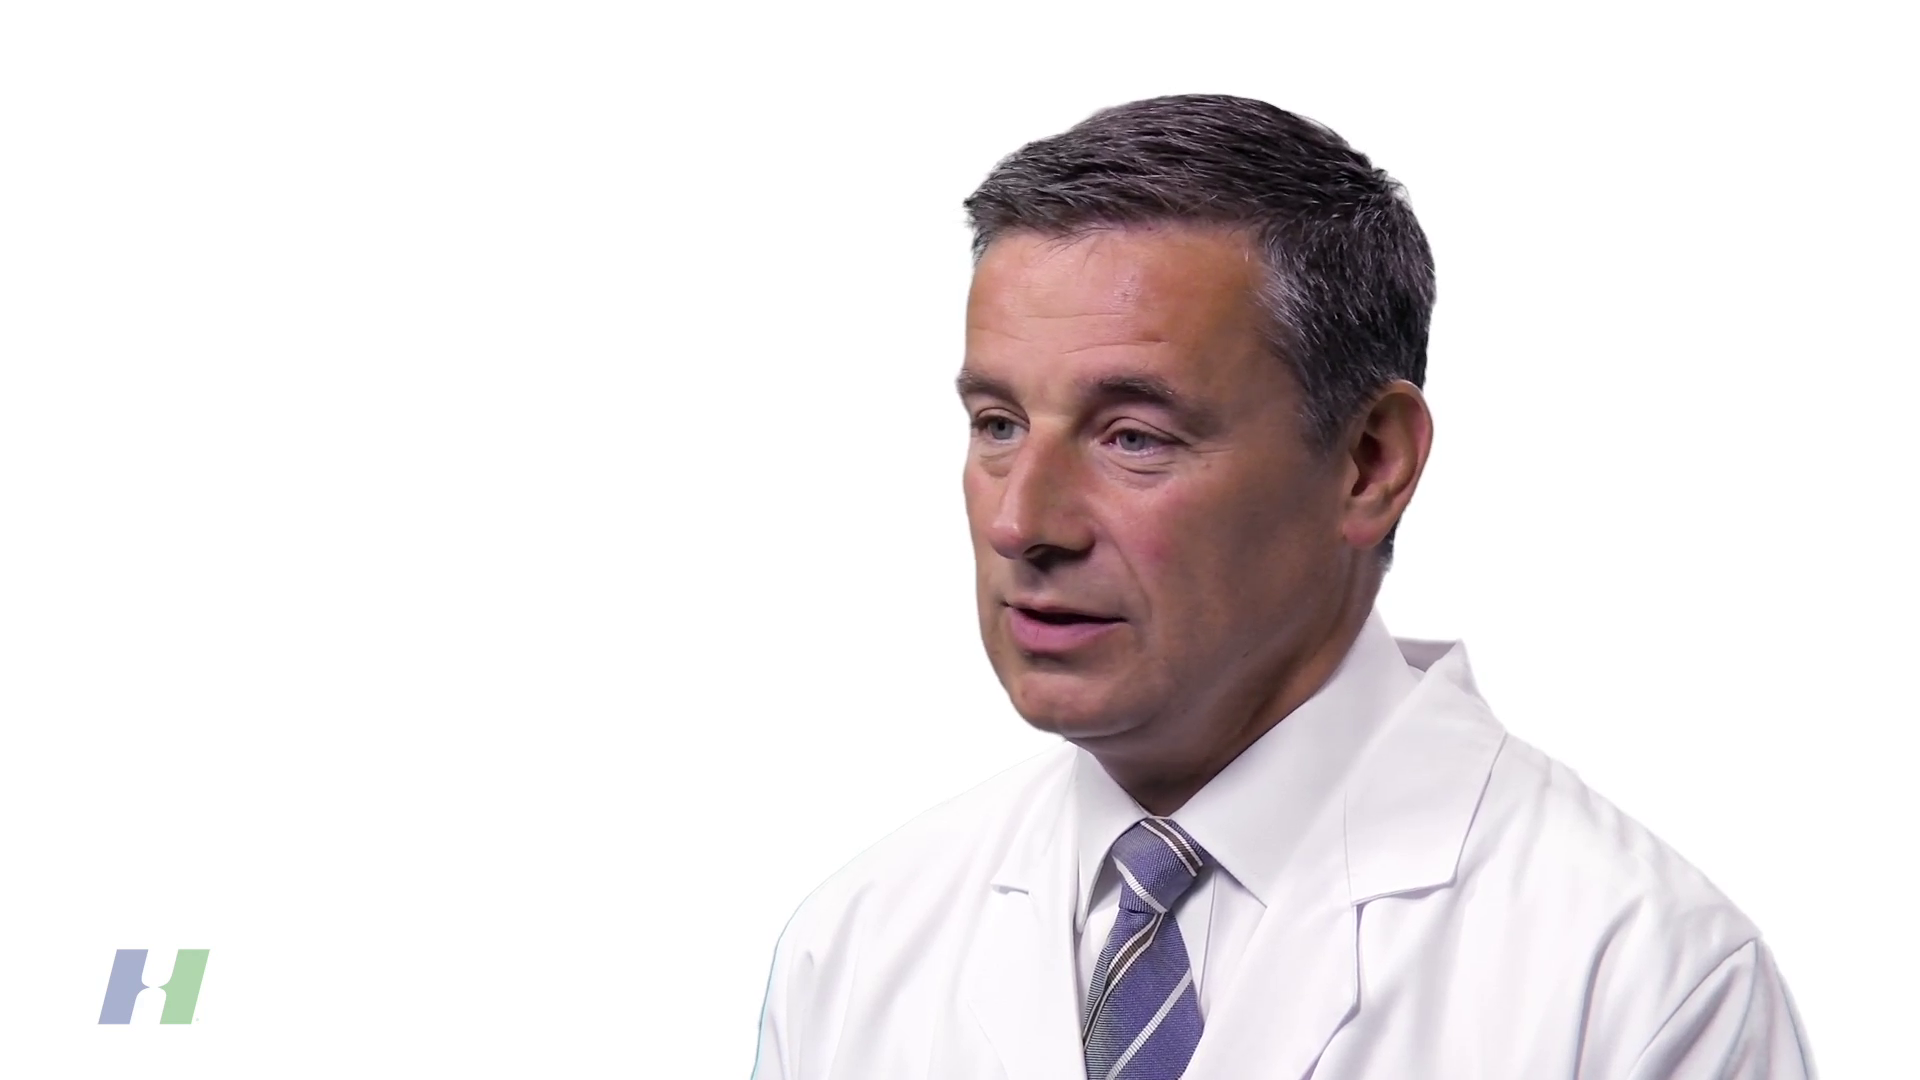 Dr. Implicito talks about his practice